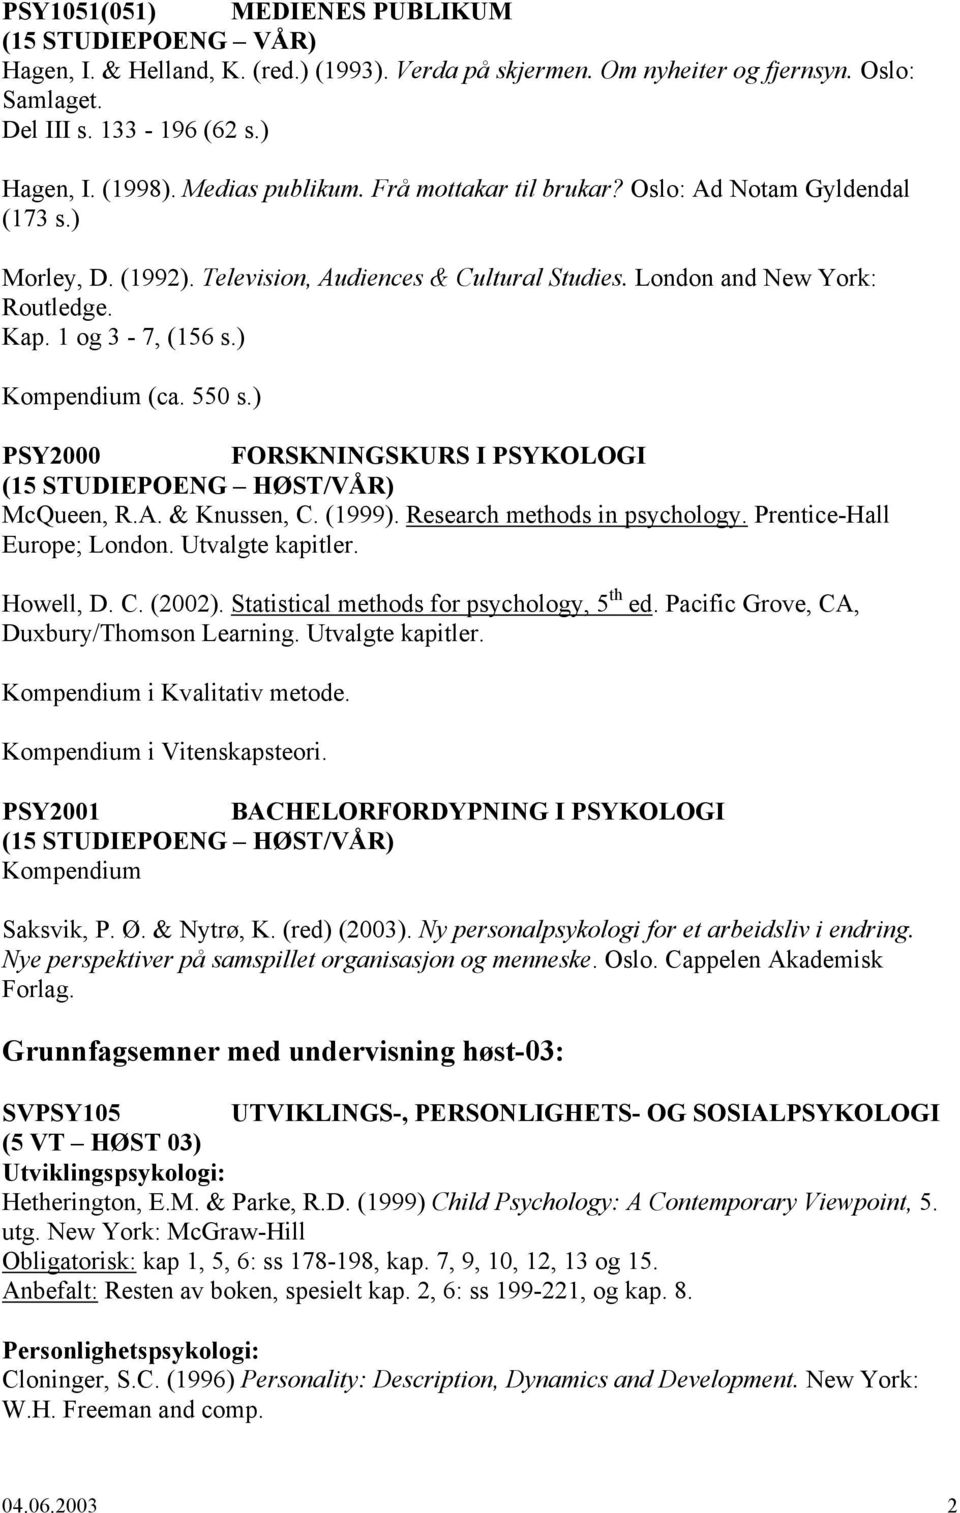 ) Kompendium (ca. 550 s.) PSY2000 FORSKNINGSKURS I PSYKOLOGI (15 STUDIEPOENG HØST/VÅR) McQueen, R.A. & Knussen, C. (1999). Research methods in psychology. Prentice-Hall Europe; London.